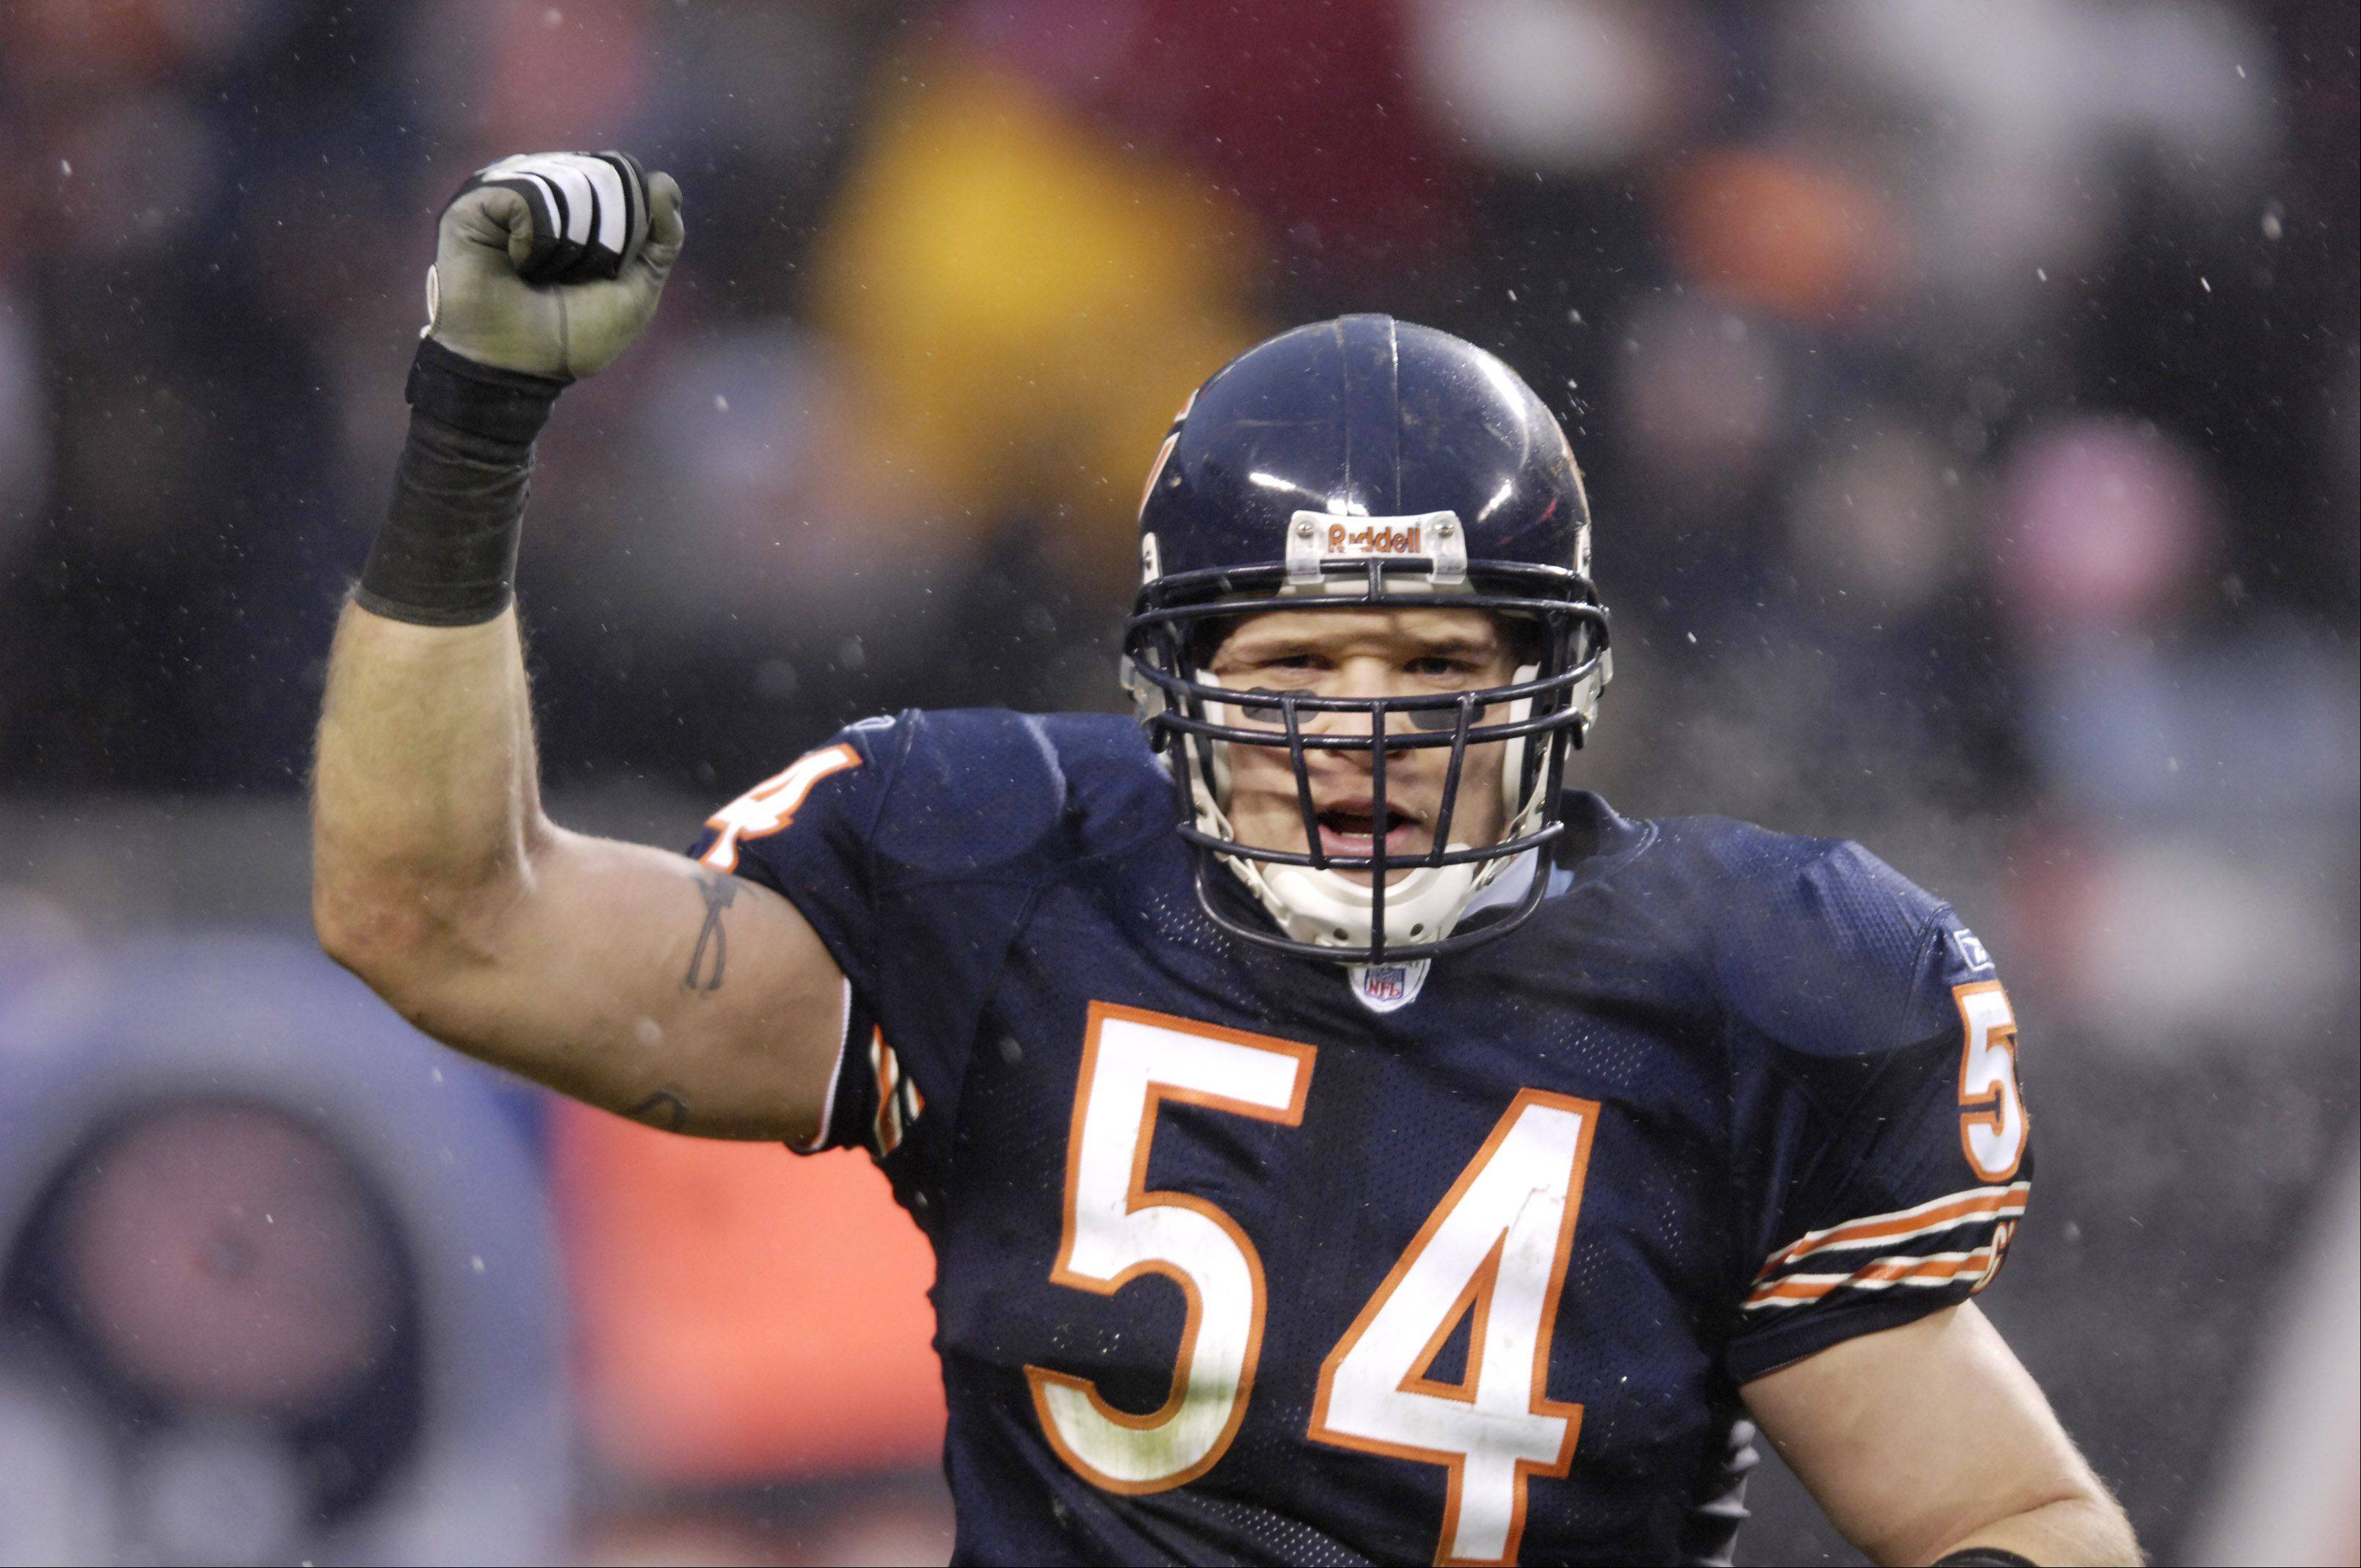 Chicago Bears linebacker Brian Urlacher celebrates a safety at the NFC Championship game .